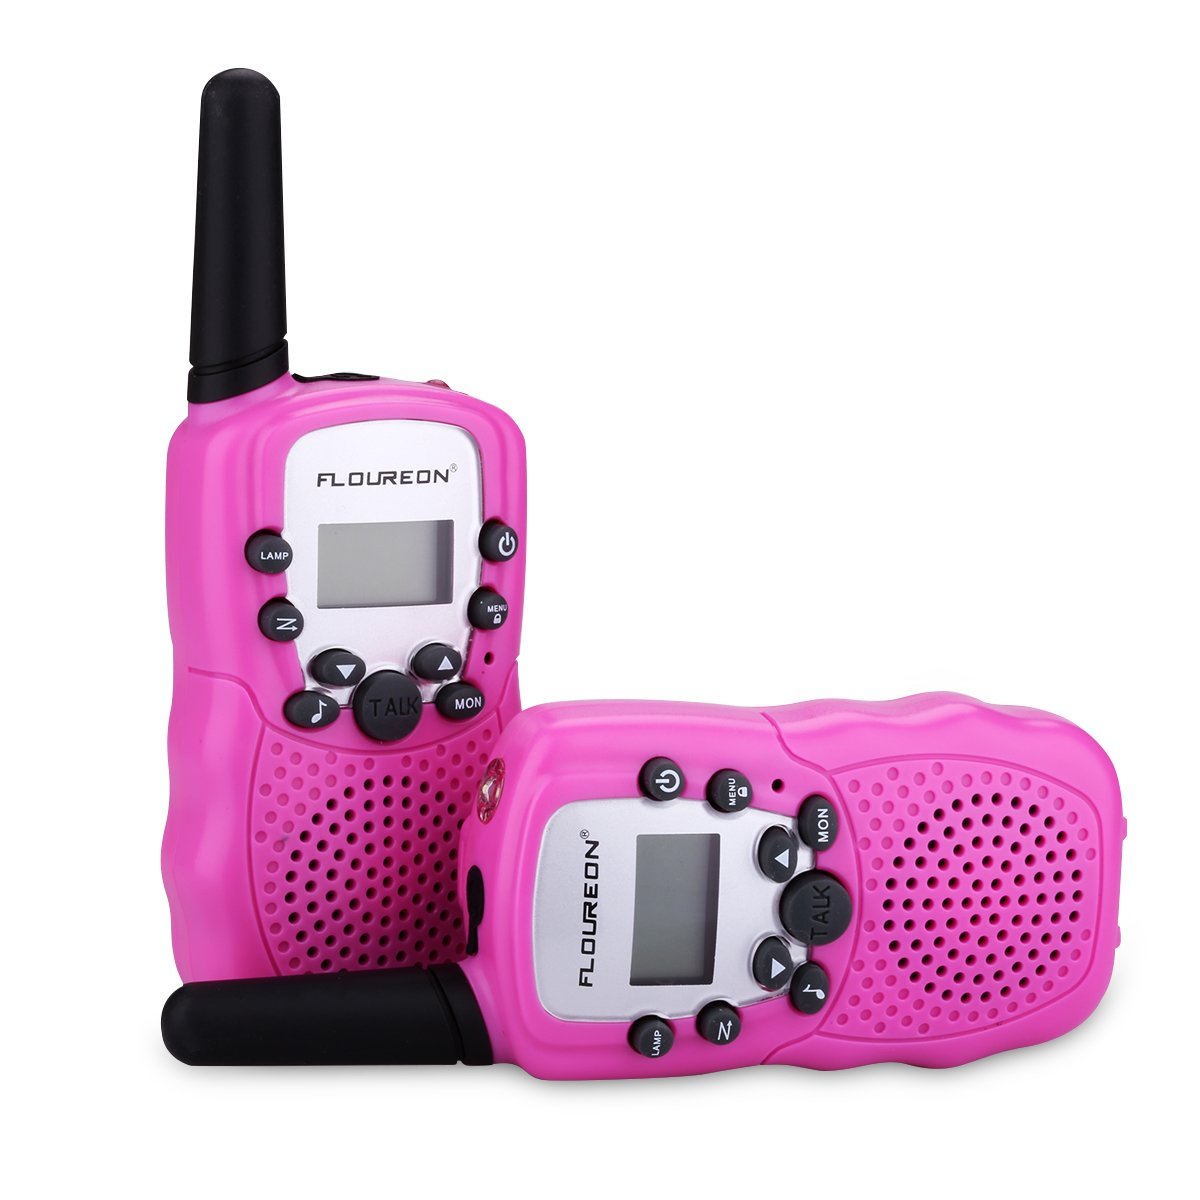 FLOUREON Walkie Talkies 4 Packs Two Way Radio for Kids with 8 Channel Long Range for Home Communication-Pink